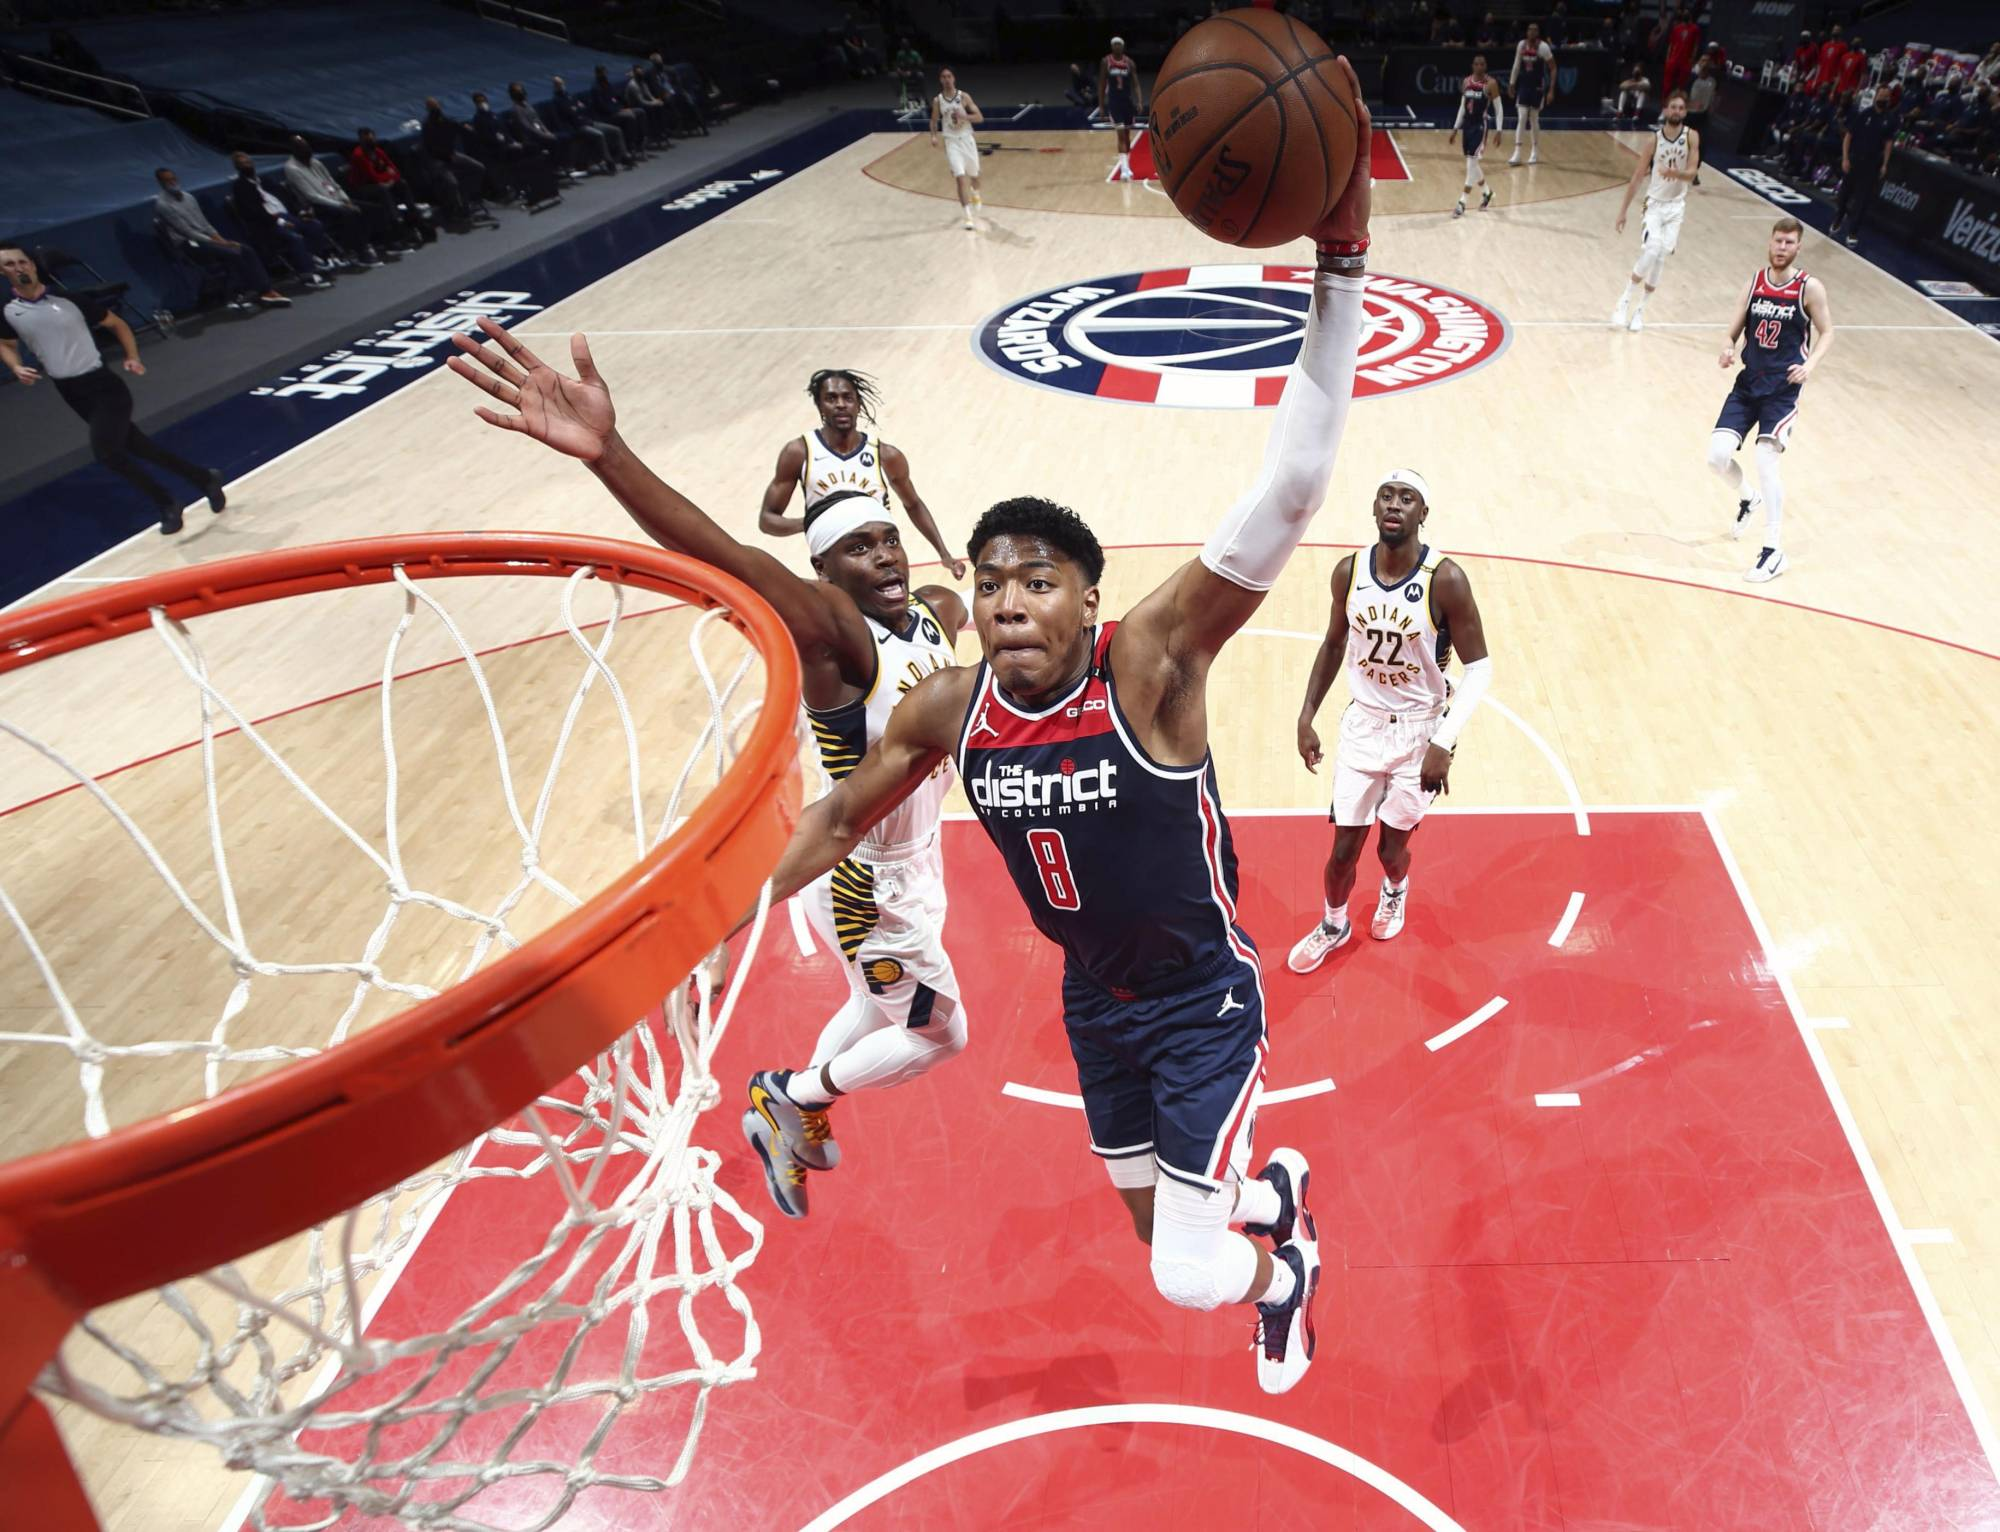 Wizards forward Rui Hachimura flies up for a dunk against the Pacers on Monday in Washington. | NBAE / VIA GETTY / VIA KYODO